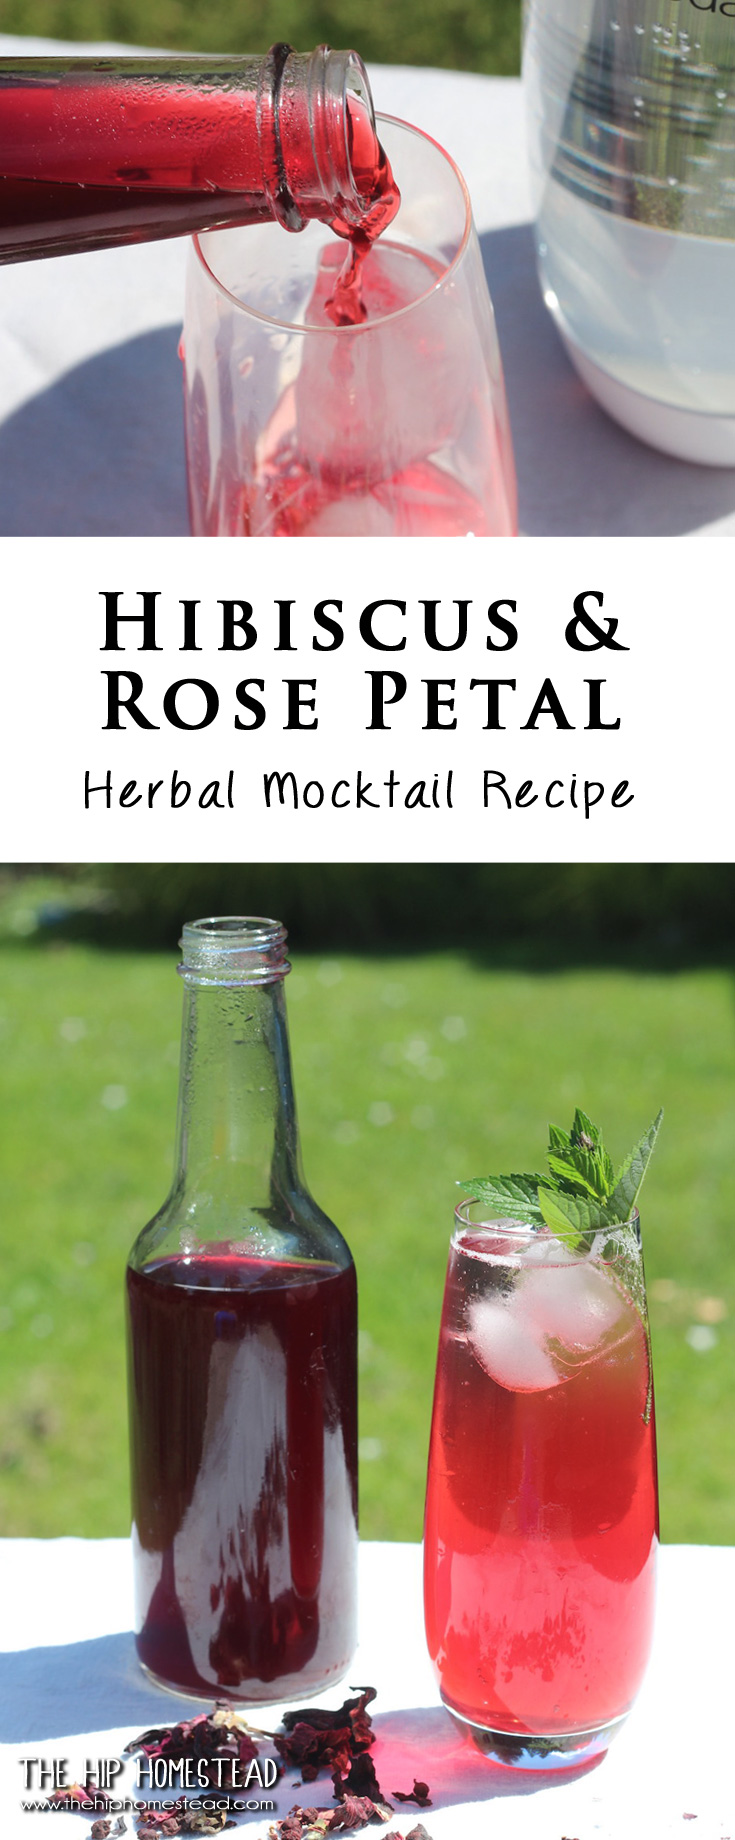 Bottle of Hibiscus and Rose Simple Syrup Red Liquid on green back ground